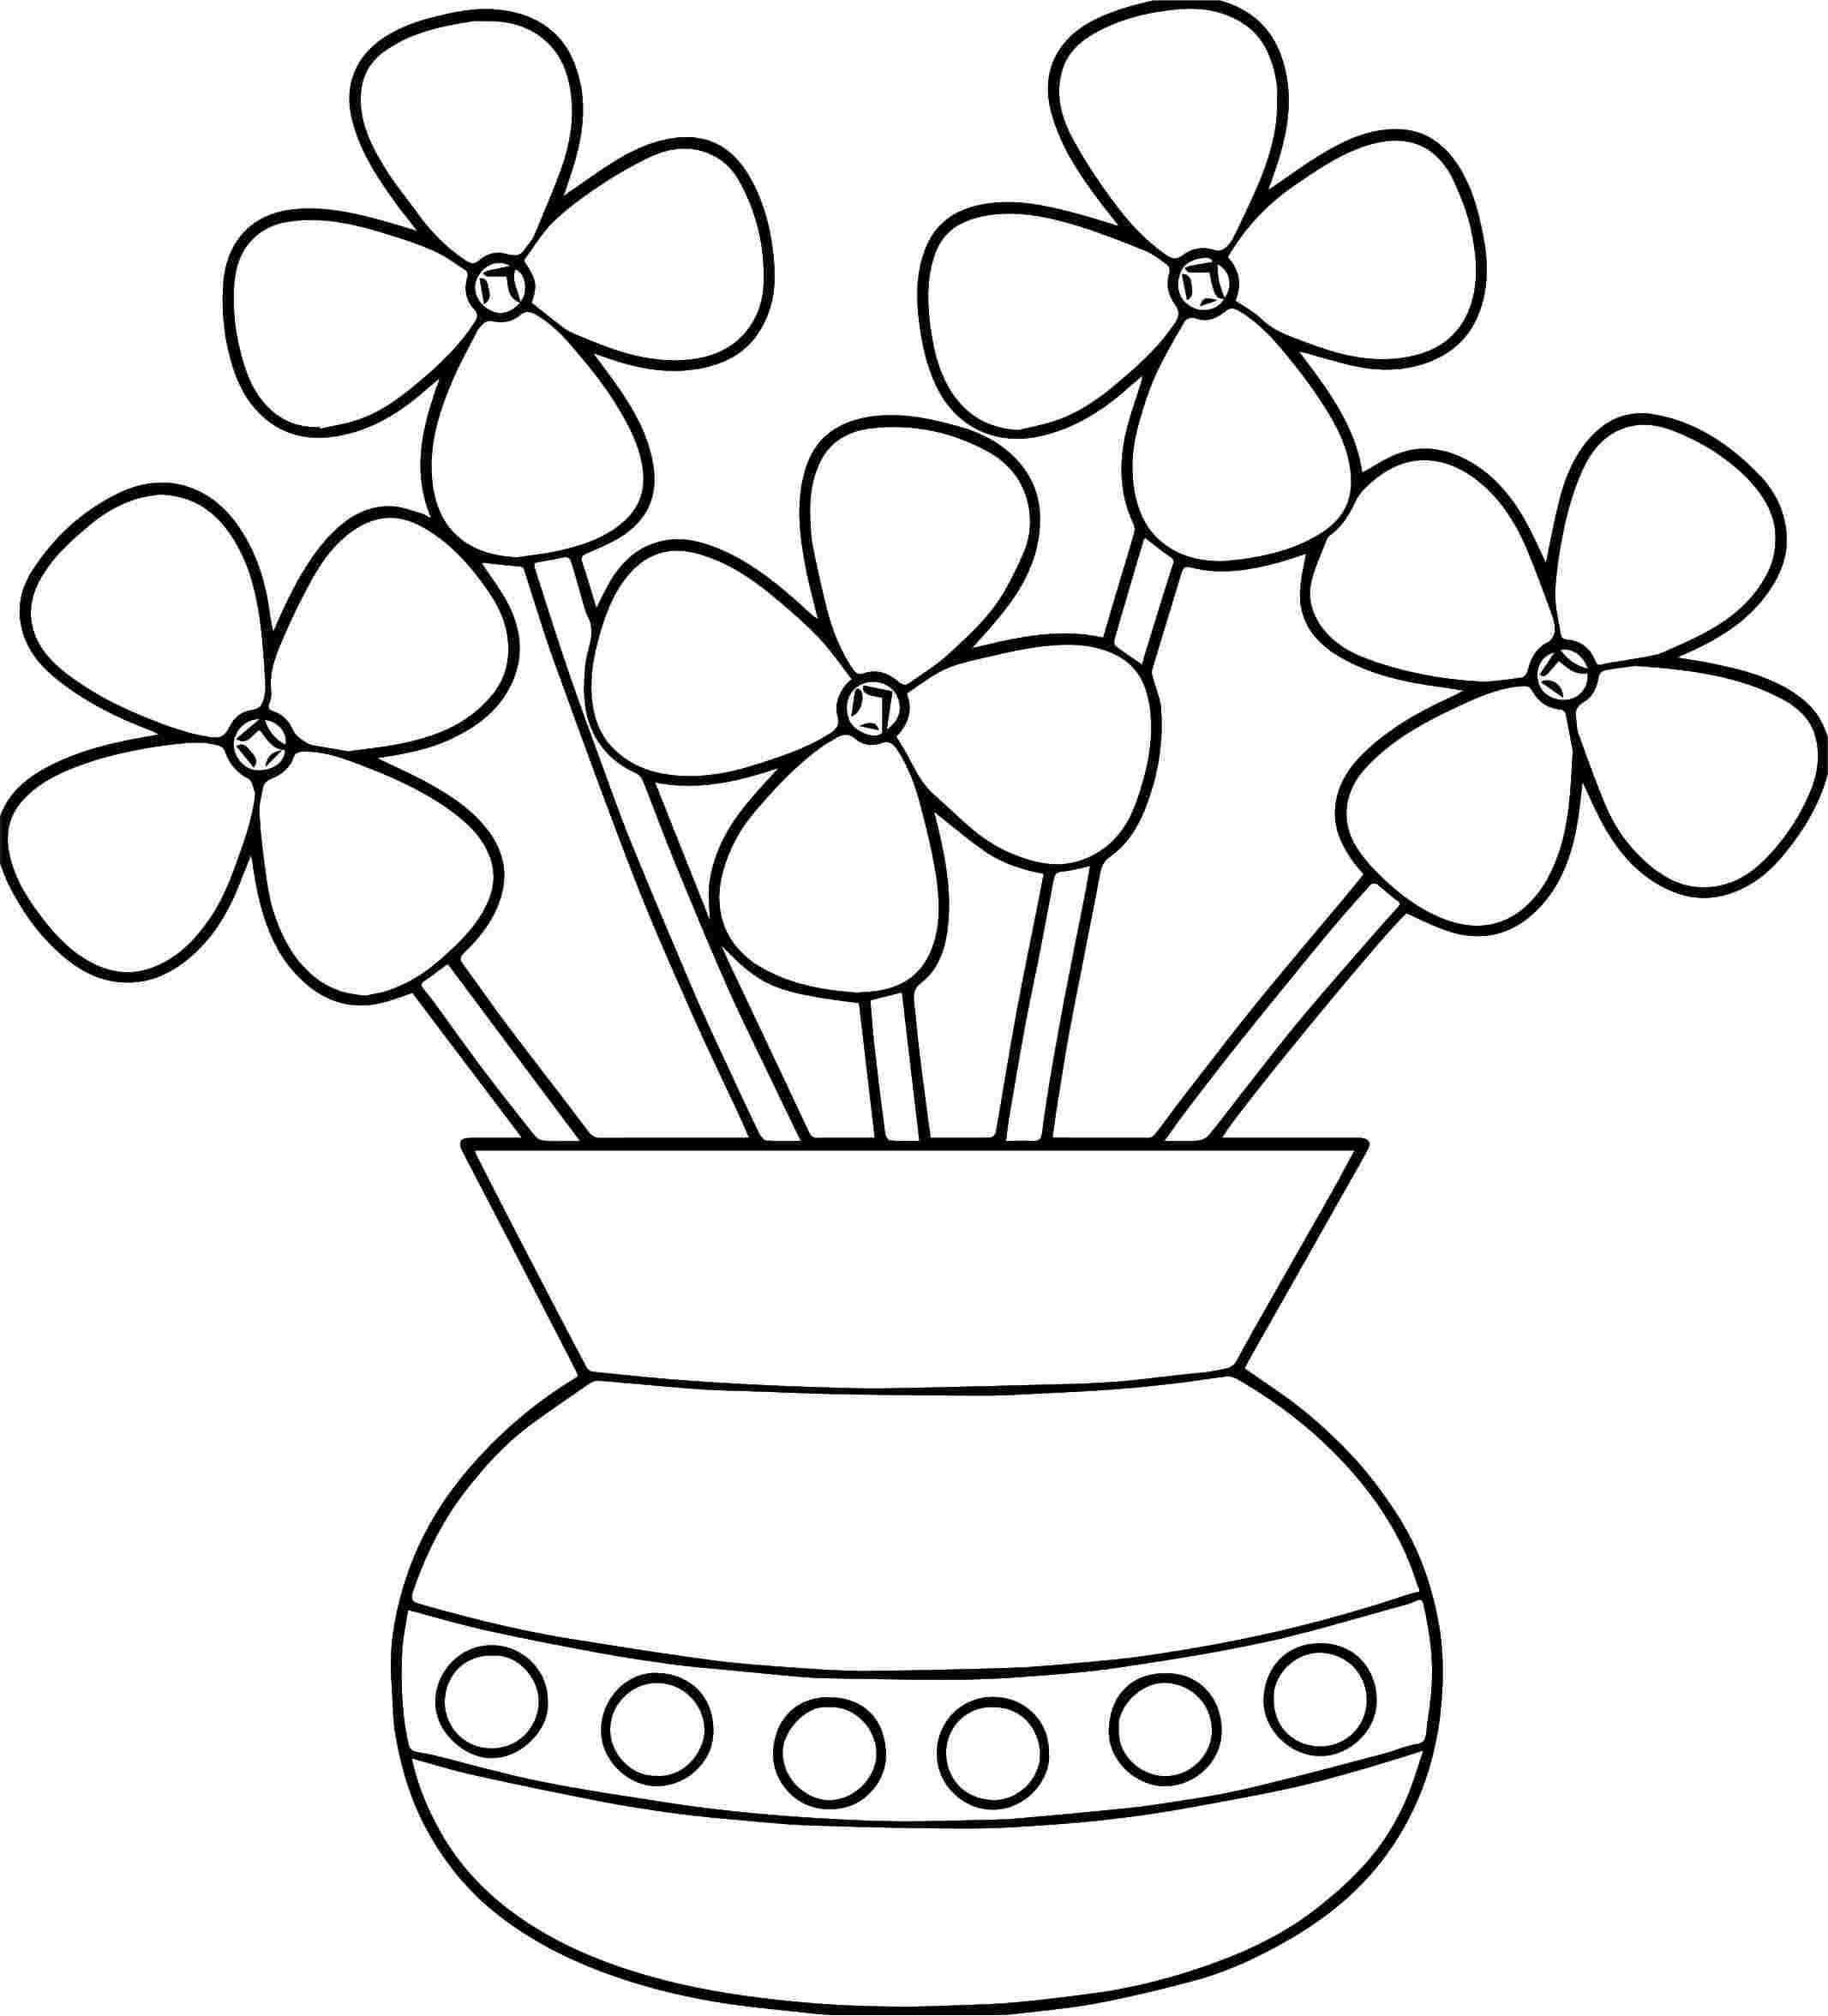 coloring pics of flowers flower plants in blossom coloring page coloring sky pics of coloring flowers